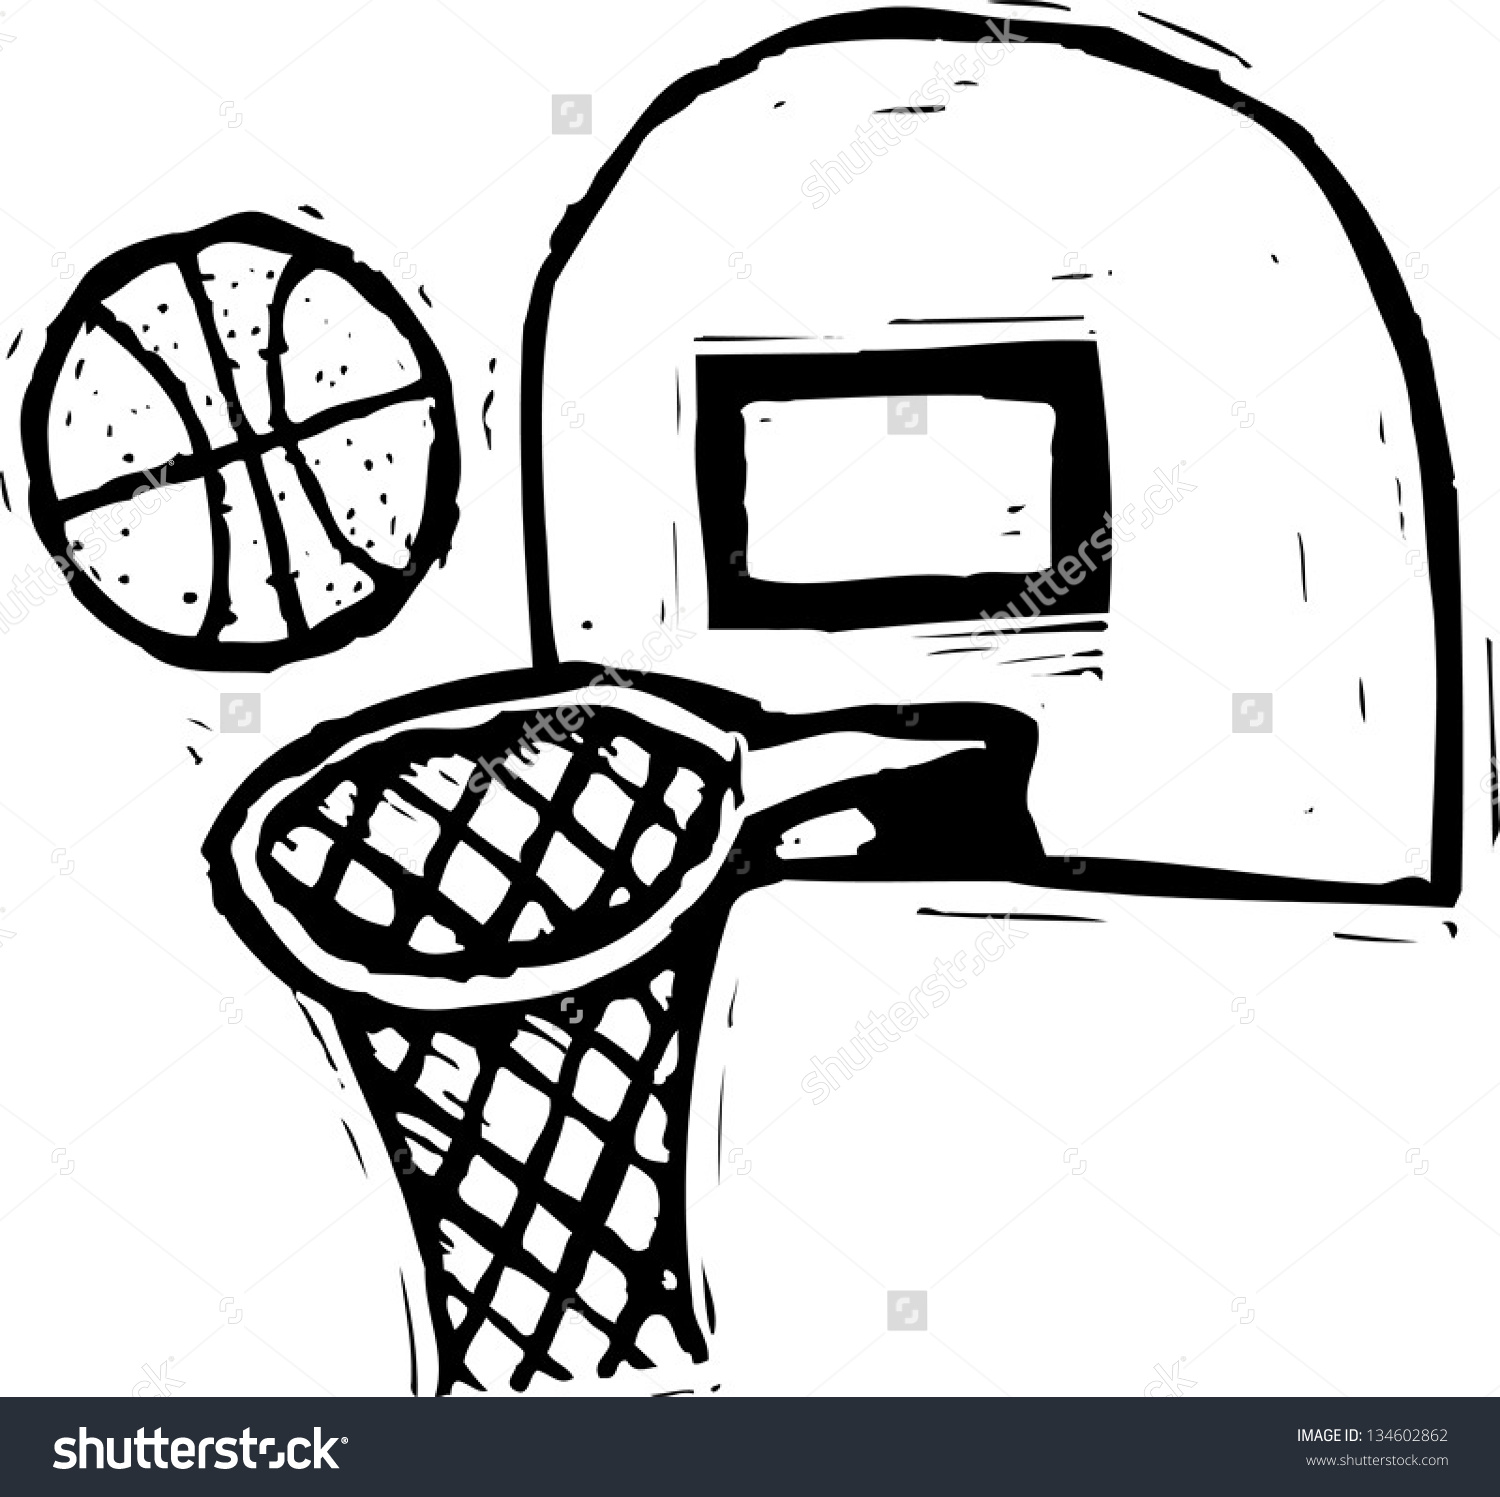 Black White Vector Illustration Basketball Backboard Stock Vector.